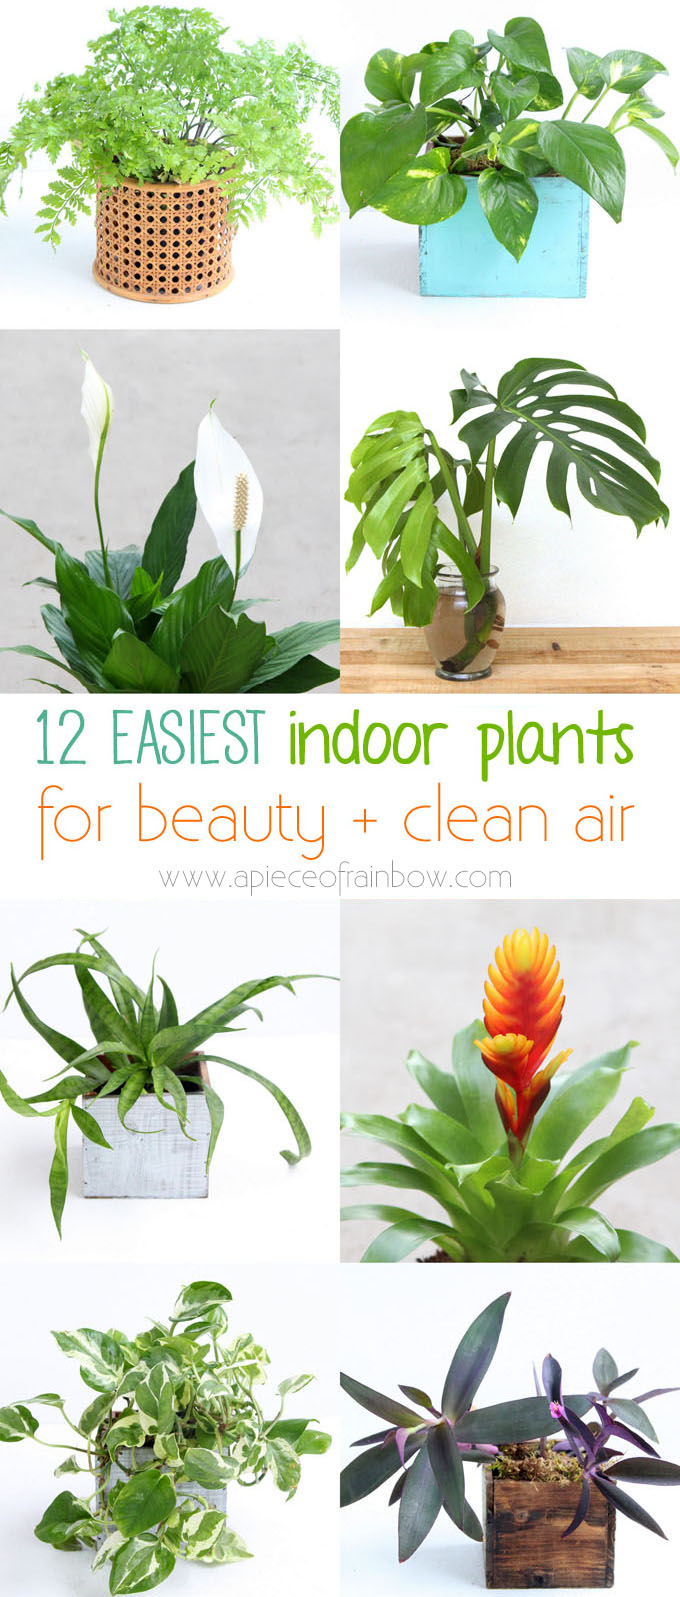 Plants With Purpose 5 Types Of Greenery You Need In Your Home Greens Moving Solutions Movers In Vancouver